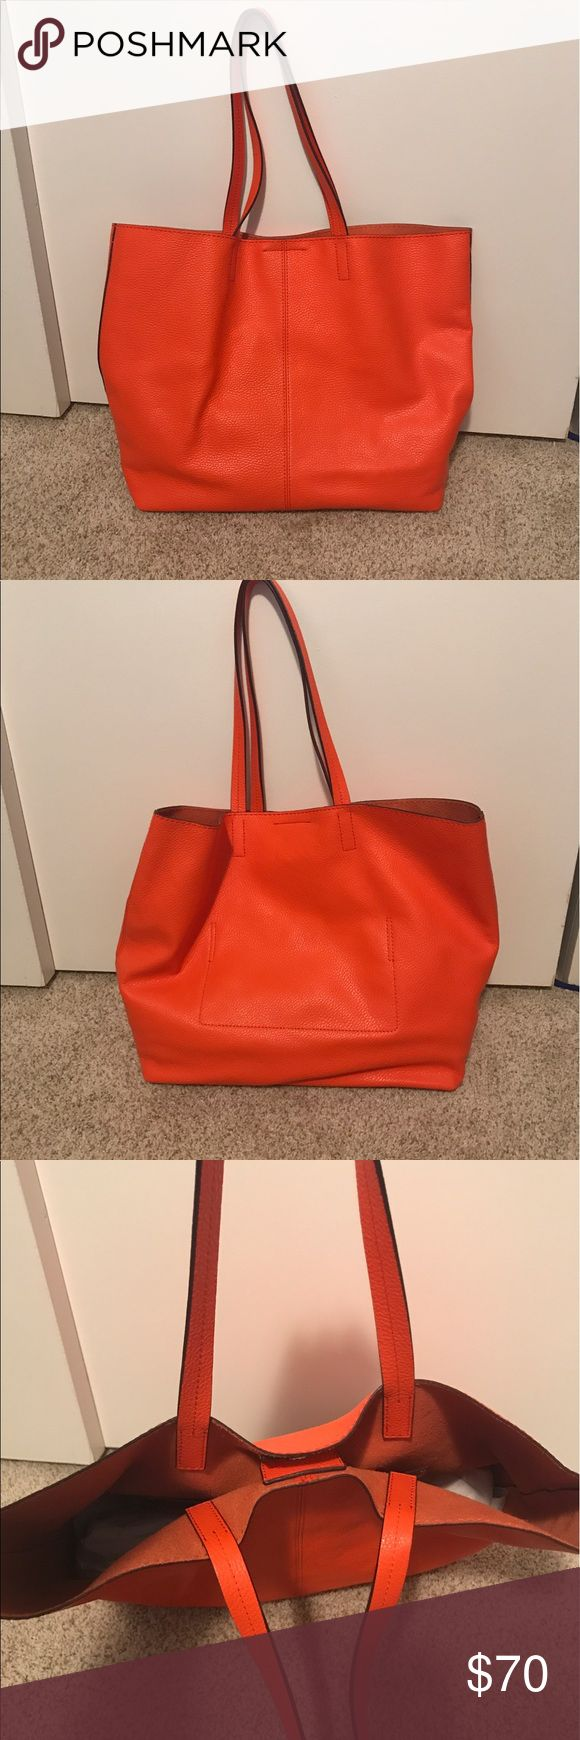 NWOT Banana Republic leather tote NWOT Banana Republic leather tote.  Soft, unstructured leather.  One interior pocket.  Magnetic closure.  Bright orange. Banana Republic Bags Totes